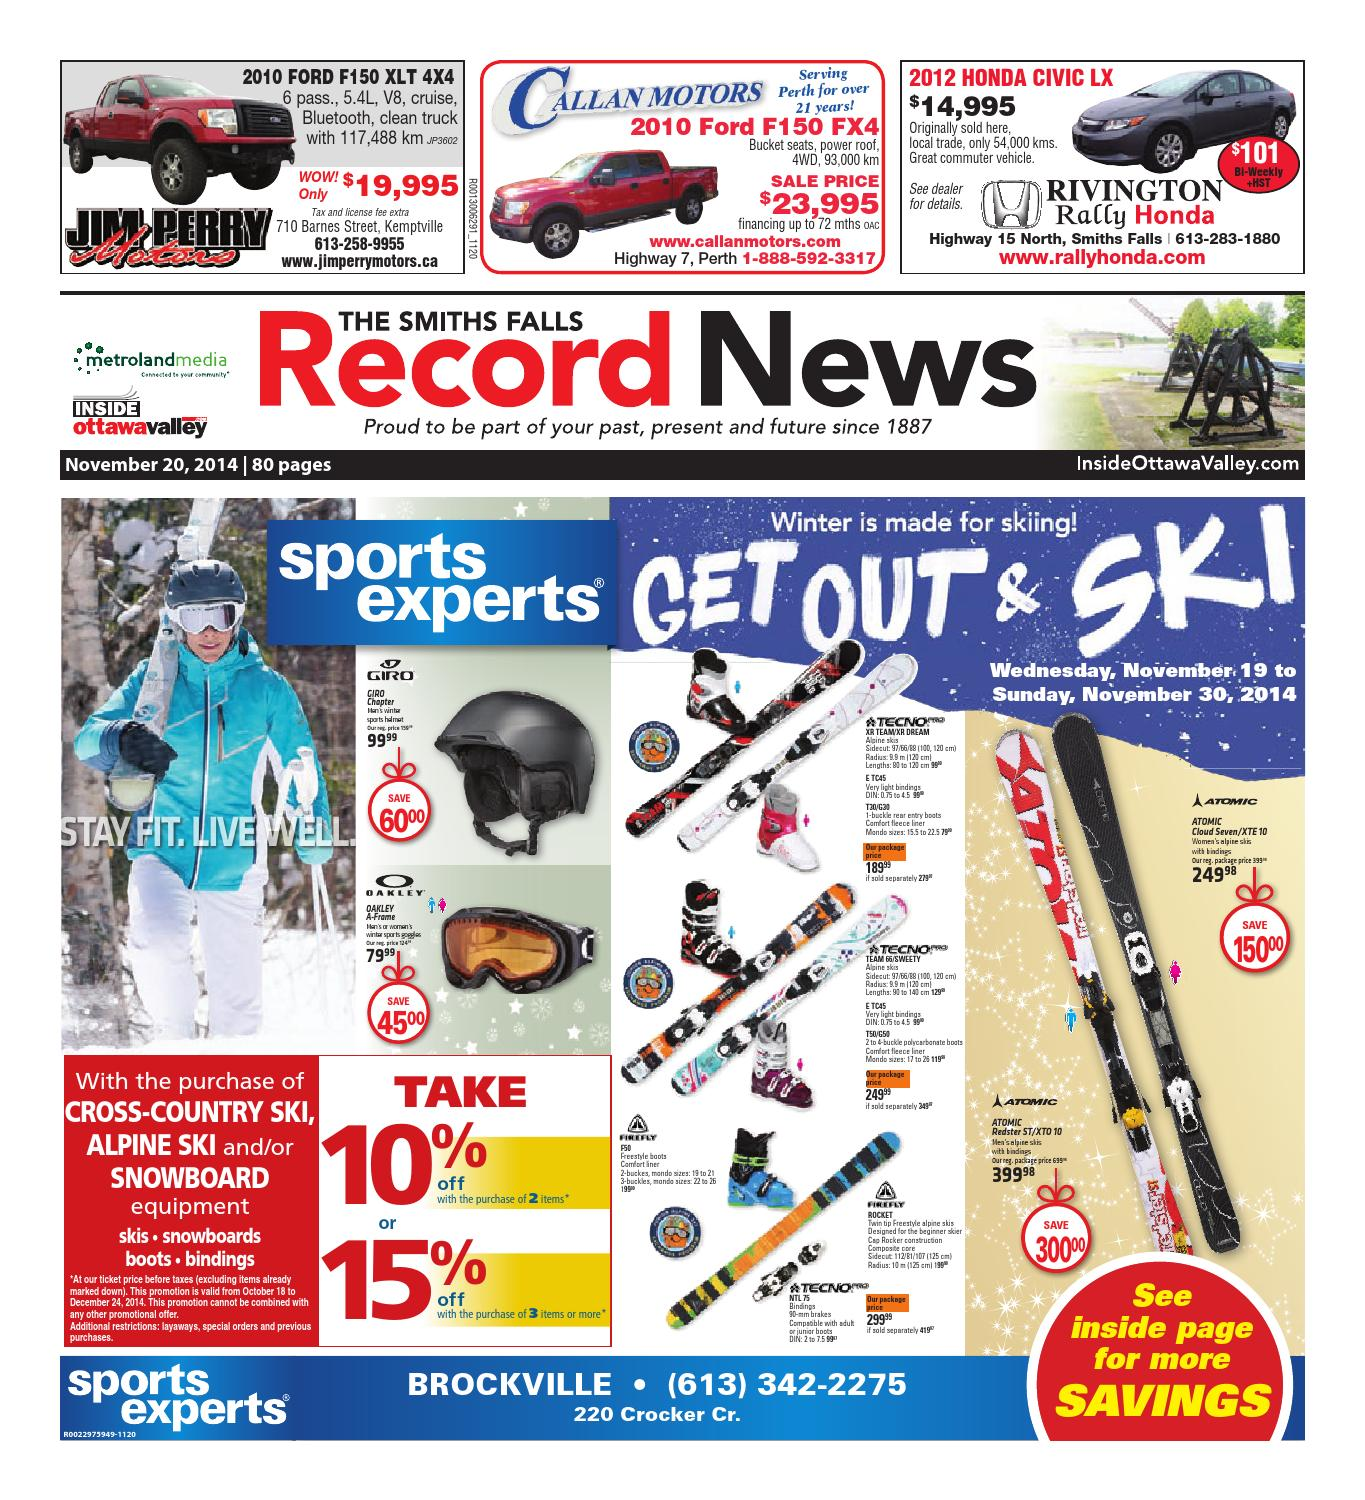 Smithsfalls By Metroland East Smiths Falls Record News Issuu - Free invoices online download official ugg outlet online store